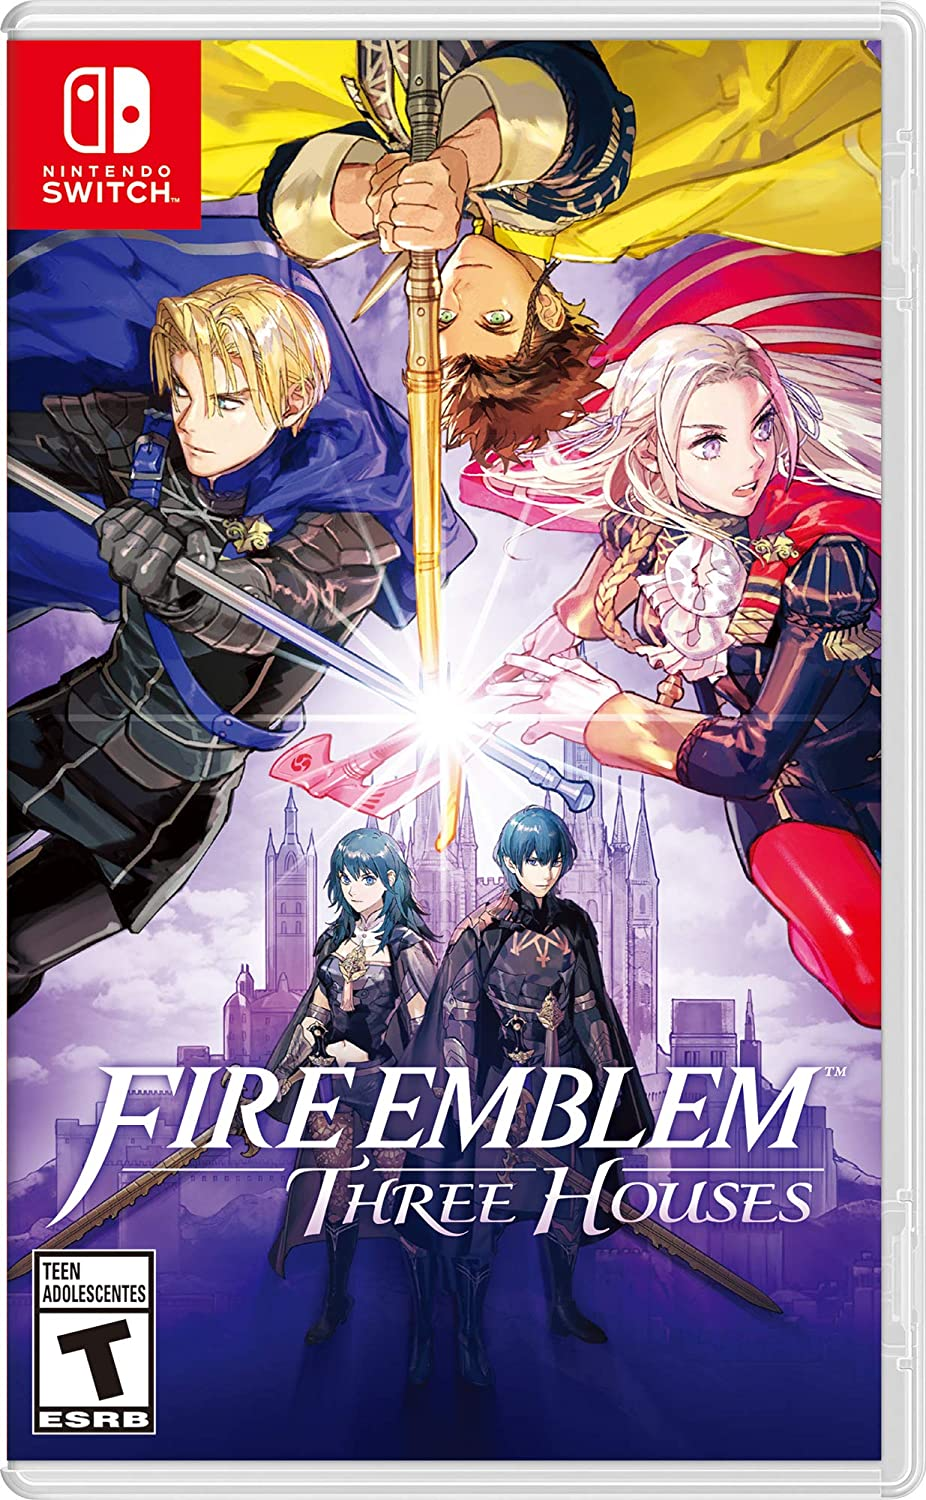 Fire Emblem: Three Houses for Nintendo Switch [USA]: Amazon.es: Nintendo of America: Cine y Series TV